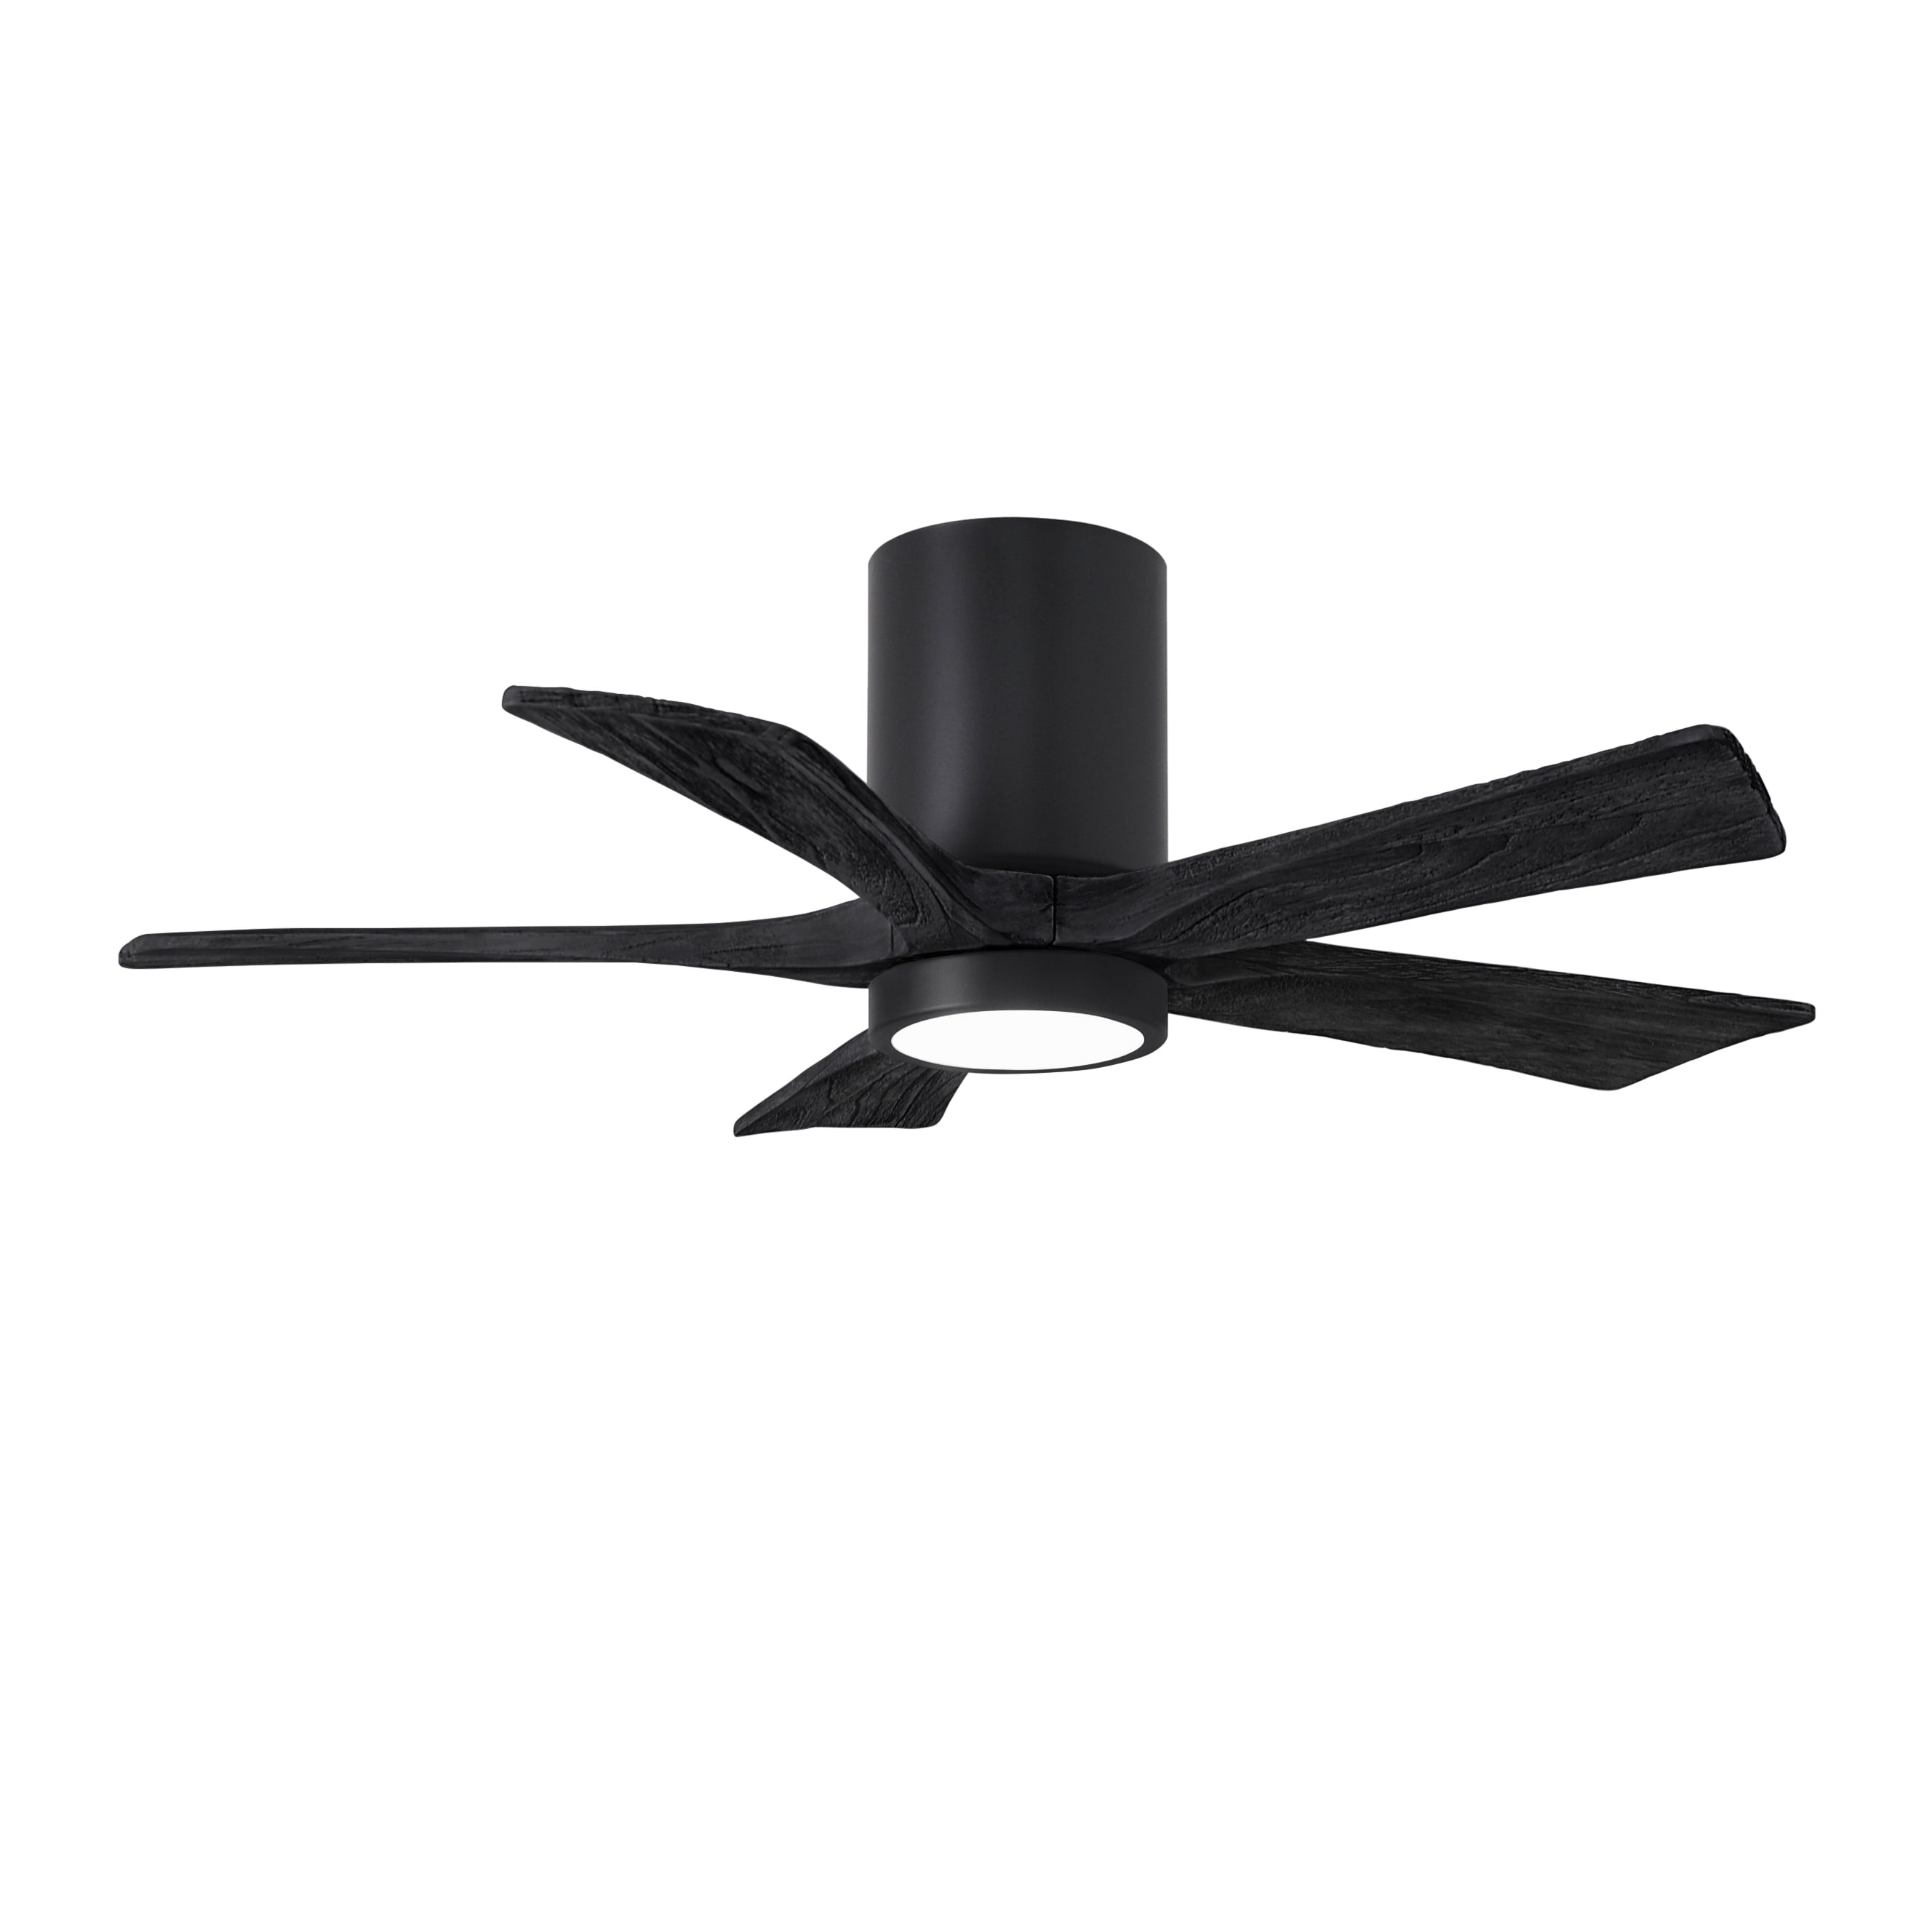 Shop For Matthews Fan Irene 5hlk 42 Inch Matte Black Ceiling Fan With Led Light Kit Get Free Delivery On Everything At Overstock Your Online Ceiling Fans Accessories Store Get 5 In Rewards With Club O 31284016